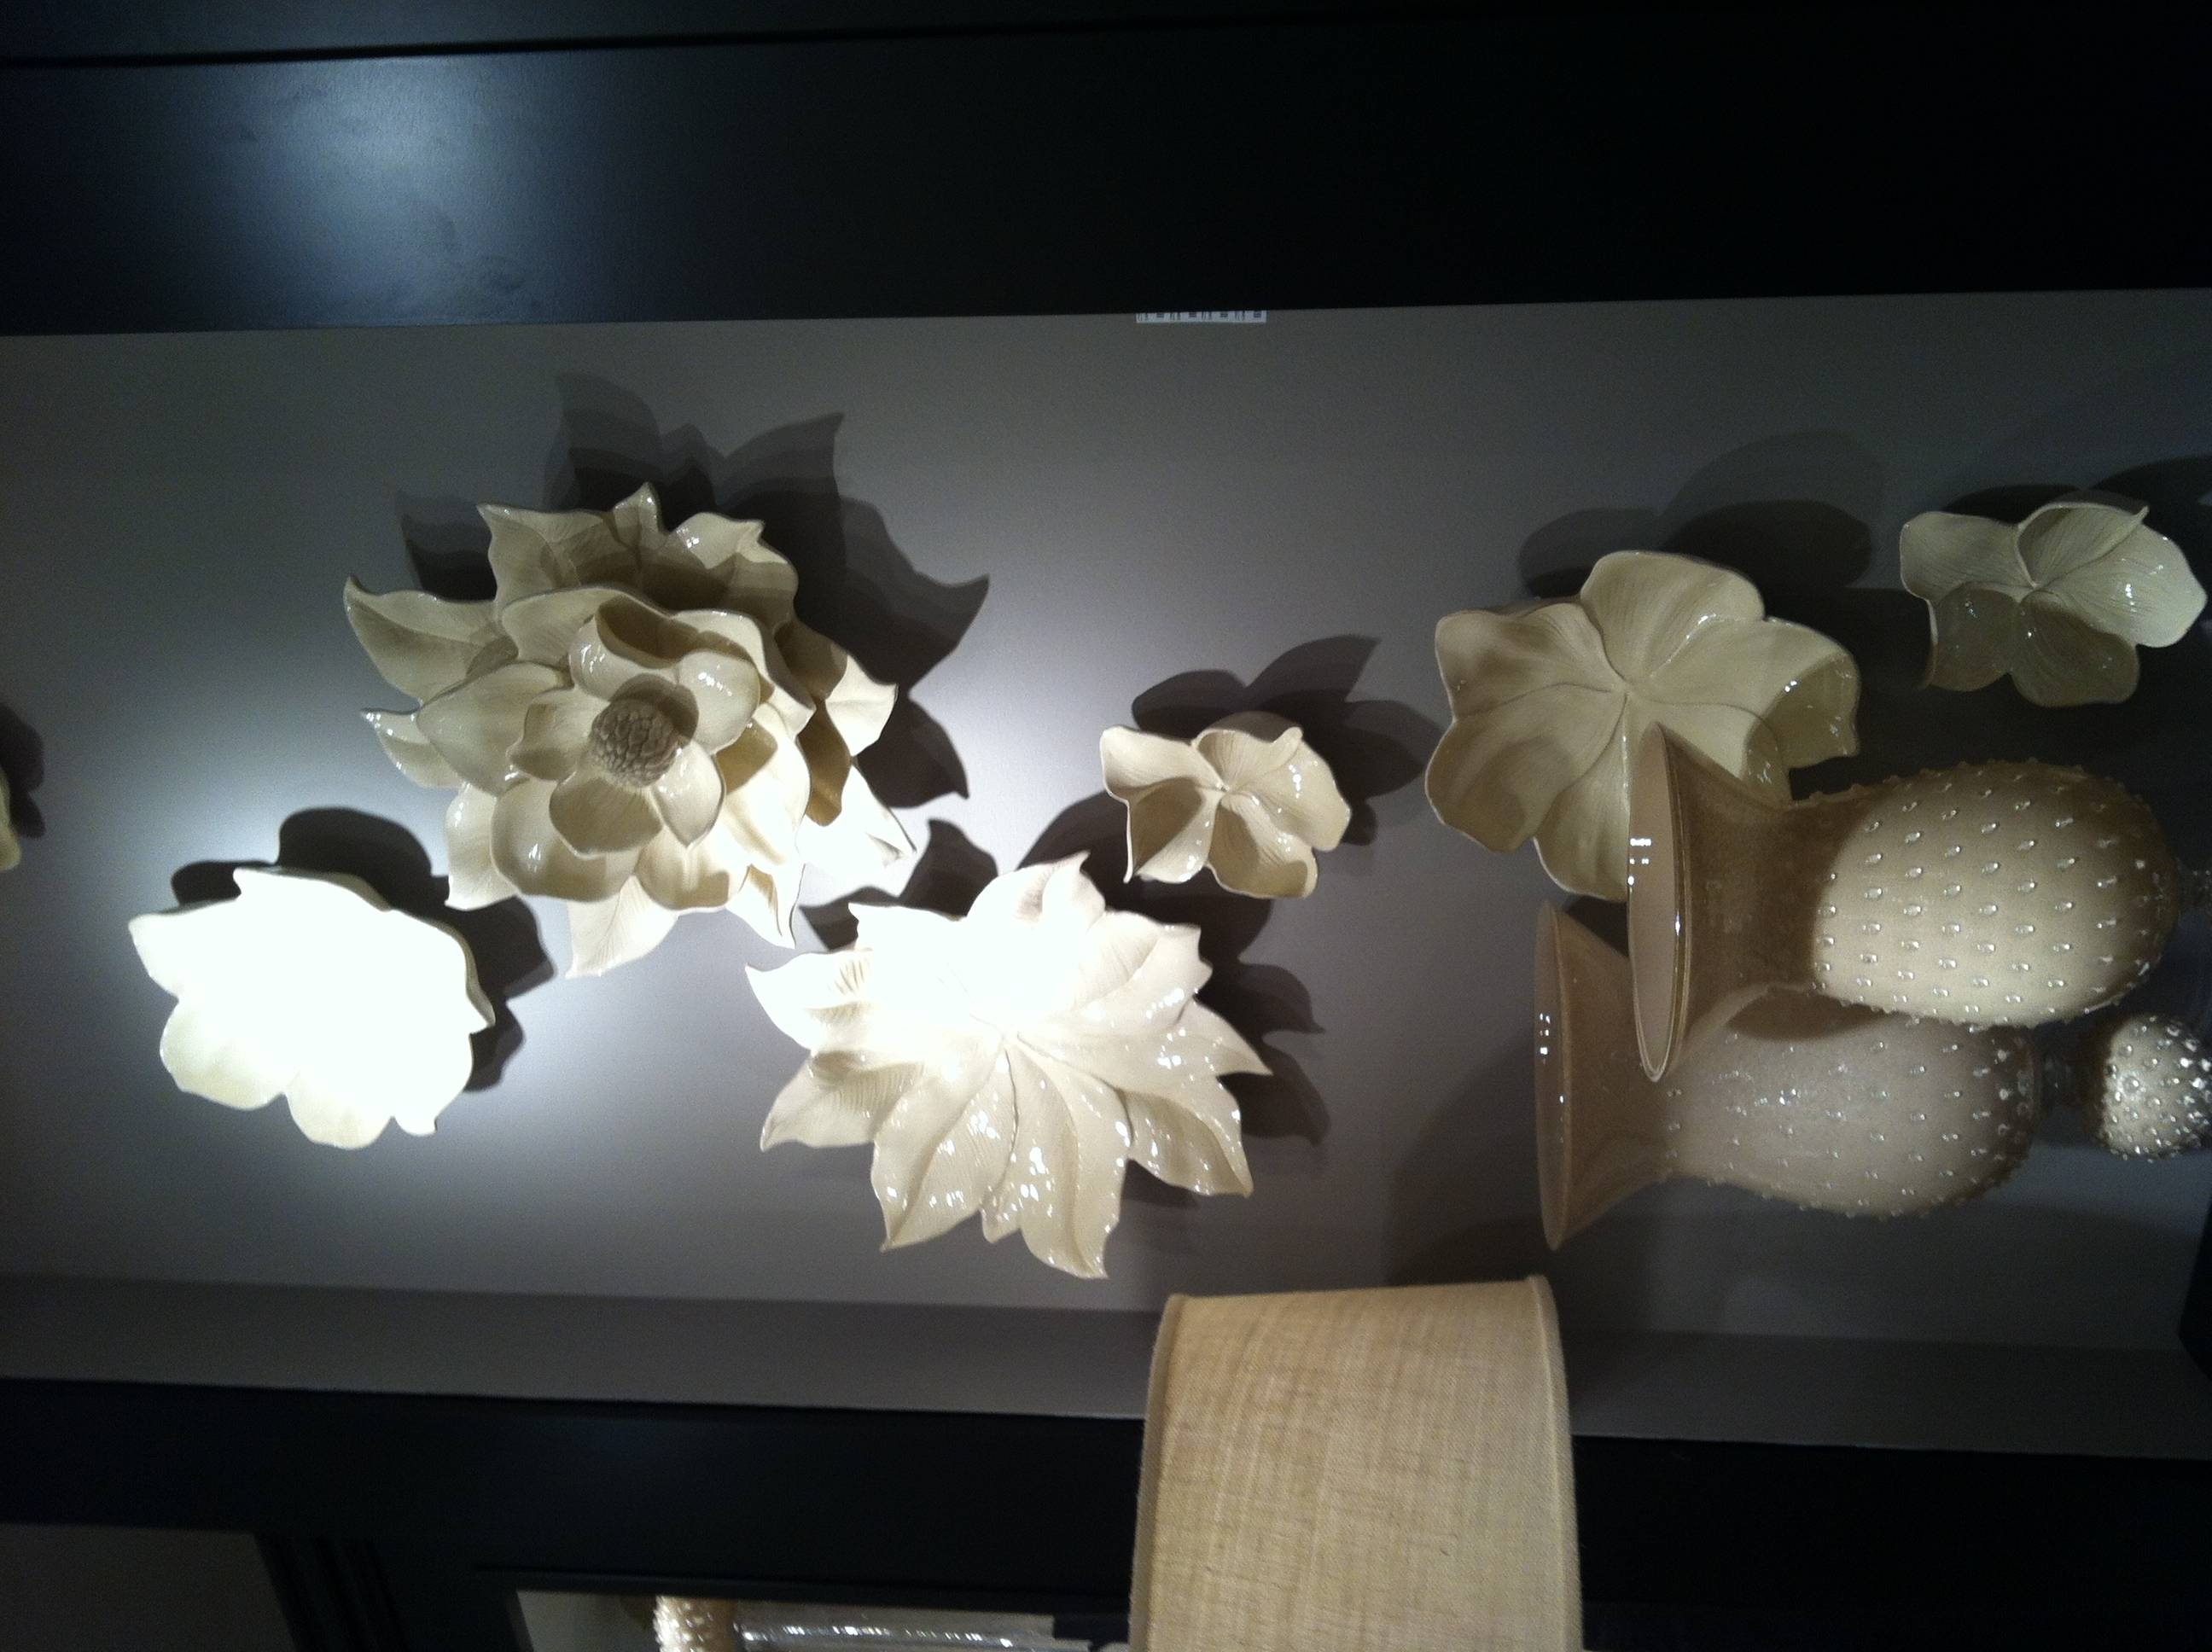 Amazing Ceramic Flower Wall Decor For Sale Valetta Vaso Con Olives Intended For Most Recent Ceramic Flower Wall Art (View 7 of 30)